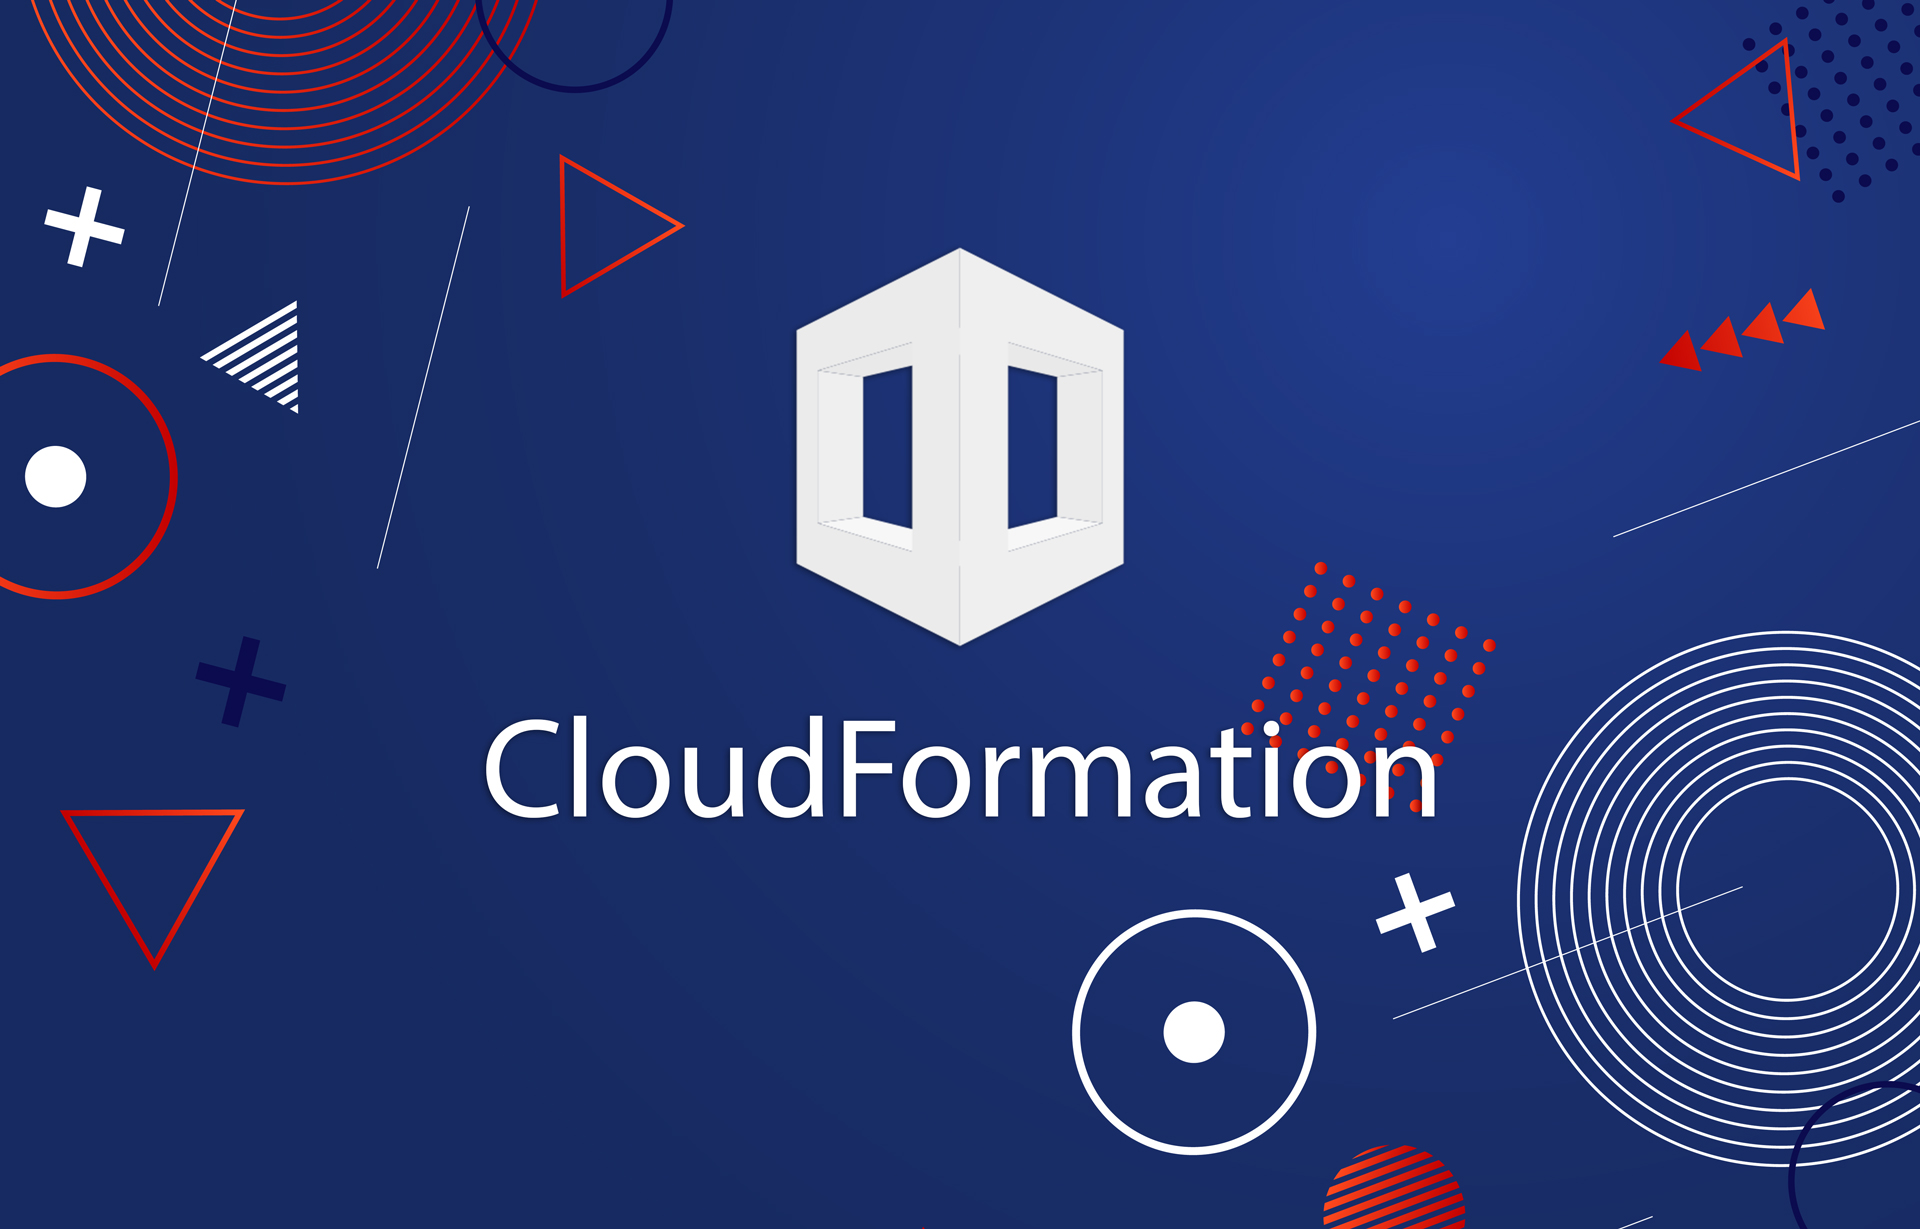 Infrastructure as Code for AWS: CloudFormation